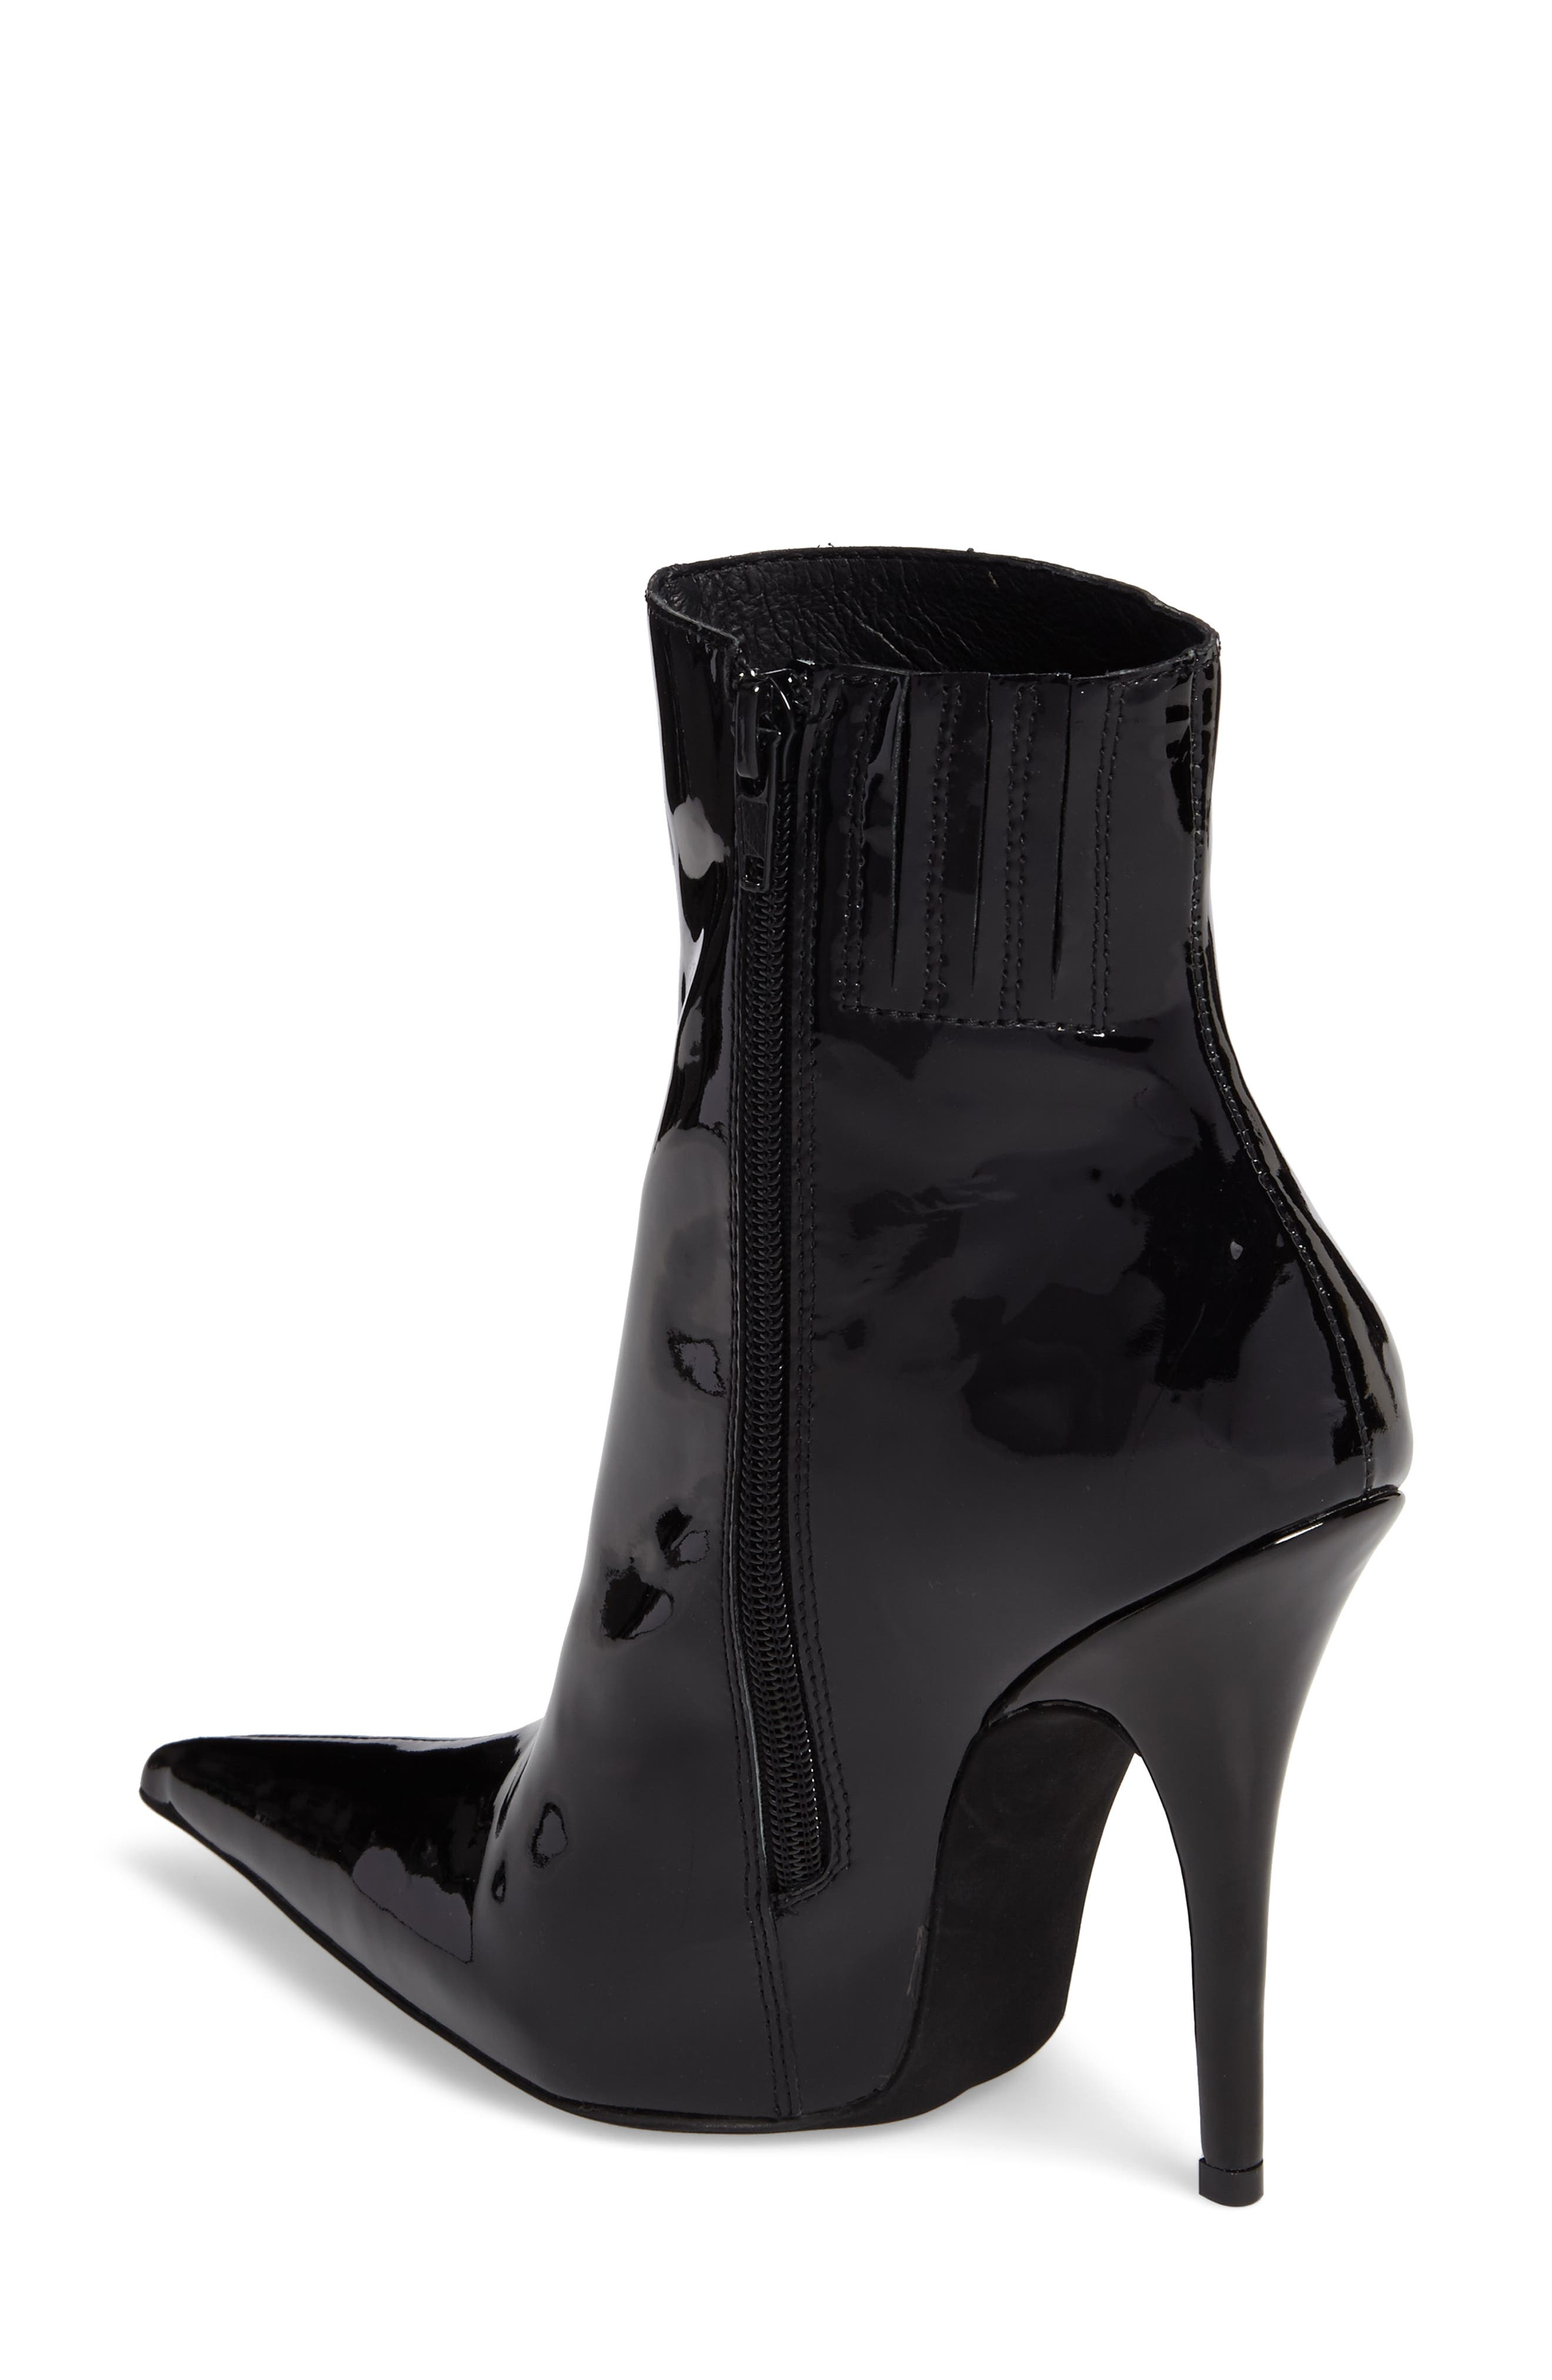 Vedette Pointy Toe Booties,                             Alternate thumbnail 2, color,                             001